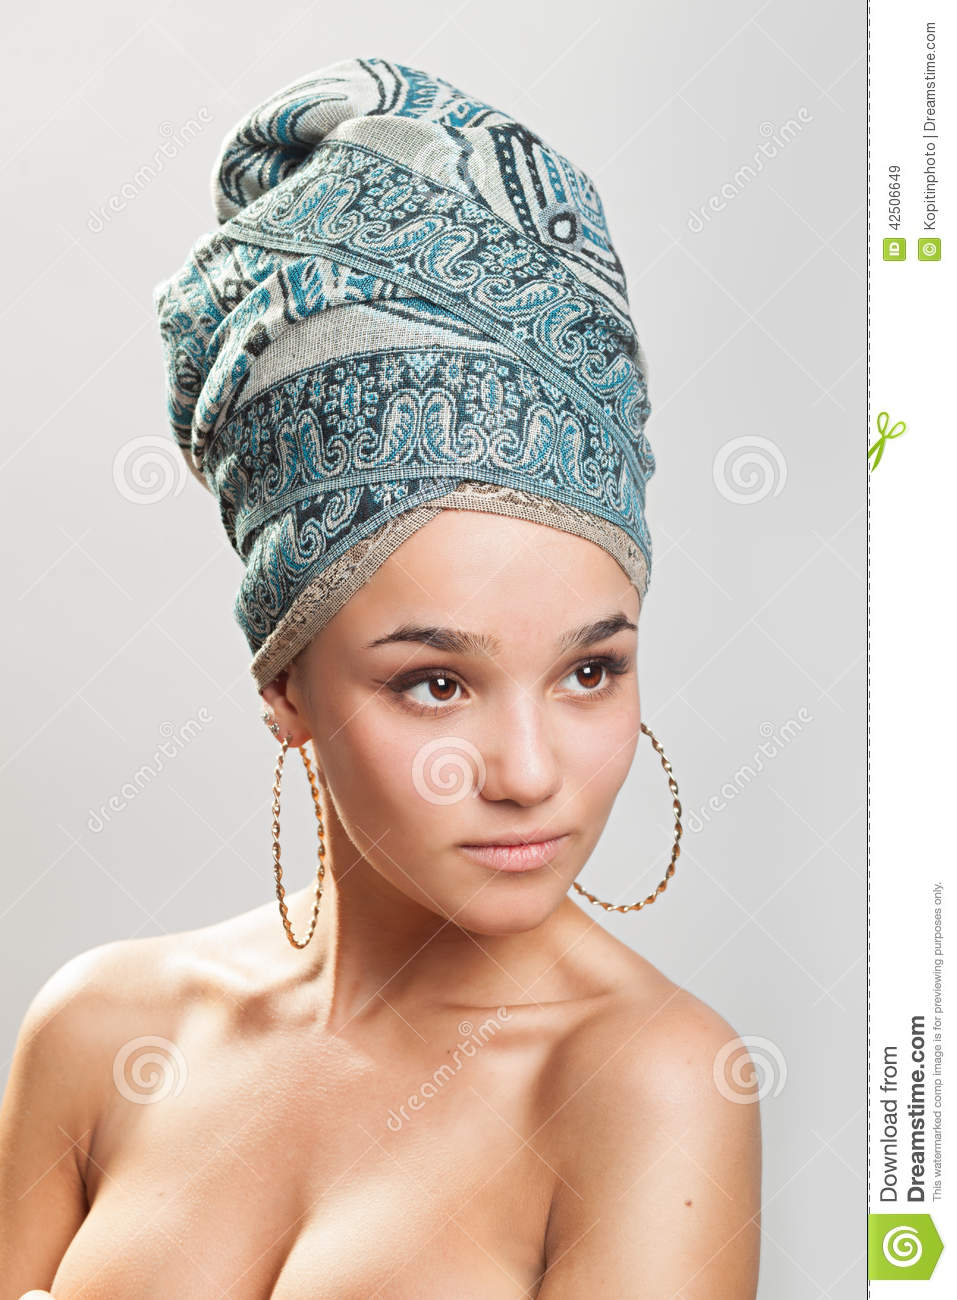 baring women Find beautiful bare girl young stock images in hd and millions of other royalty-free stock photos, illustrations, and vectors in the shutterstock collection.